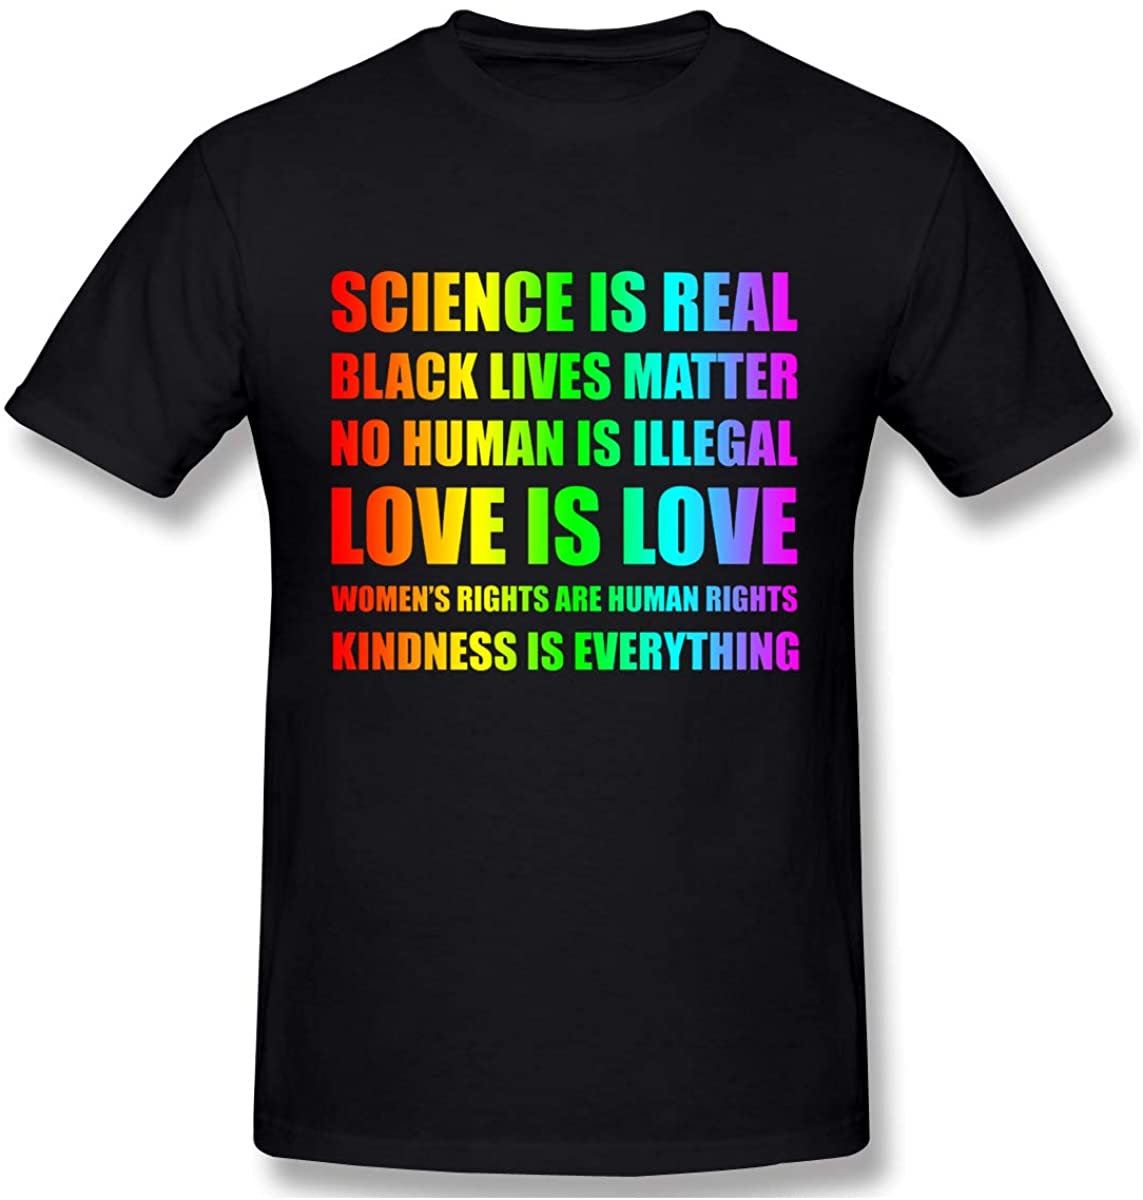 Science is Real Black Lives Matter Love is Love Men's Athletic Short Sleeve T-Shirt Cotton Tee